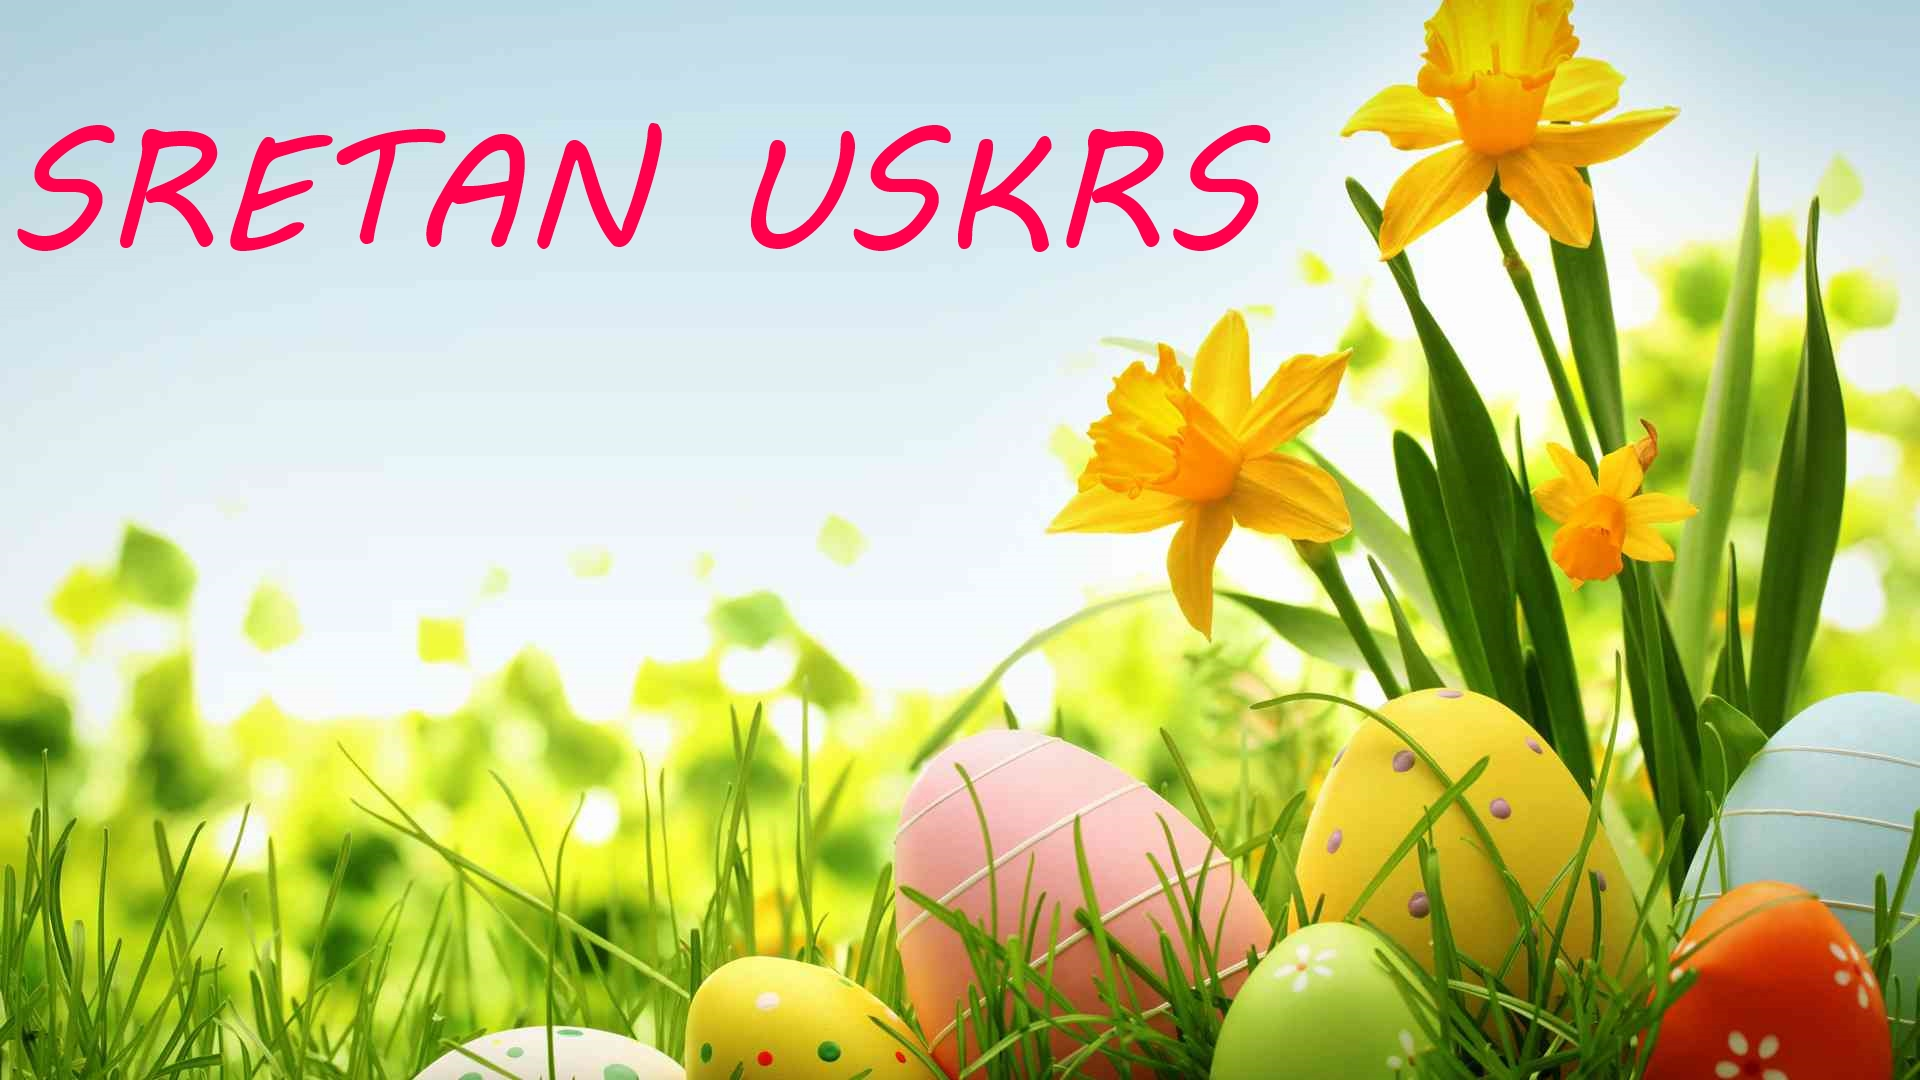 čestitka sretan uskrs Index of /press/wp content/uploads/2015/04 čestitka sretan uskrs